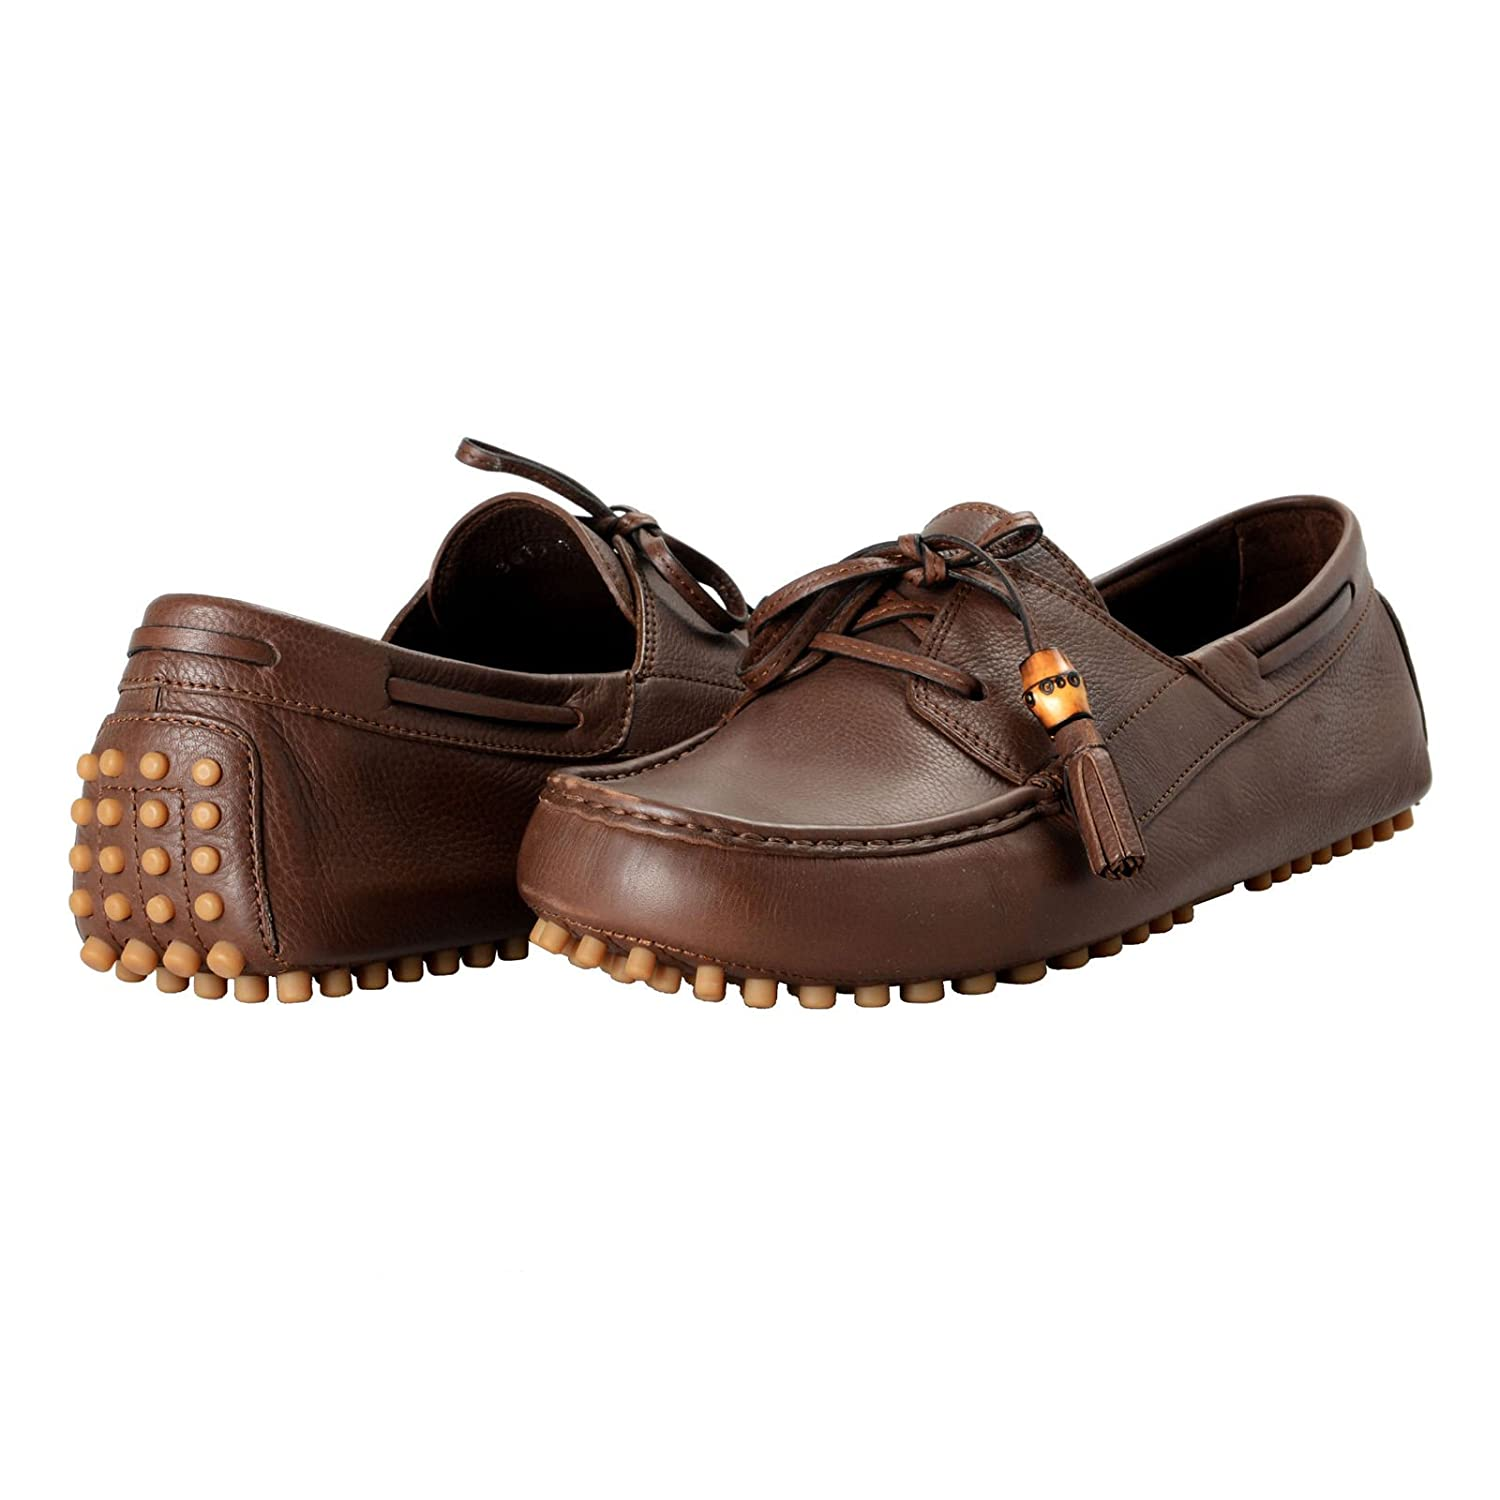 f80dc821c Amazon.com: Gucci Men's Brown Leather Moccasins Slip On Driving Shoes Sz US  11.5 IT 9.5 EU 44.5: Shoes